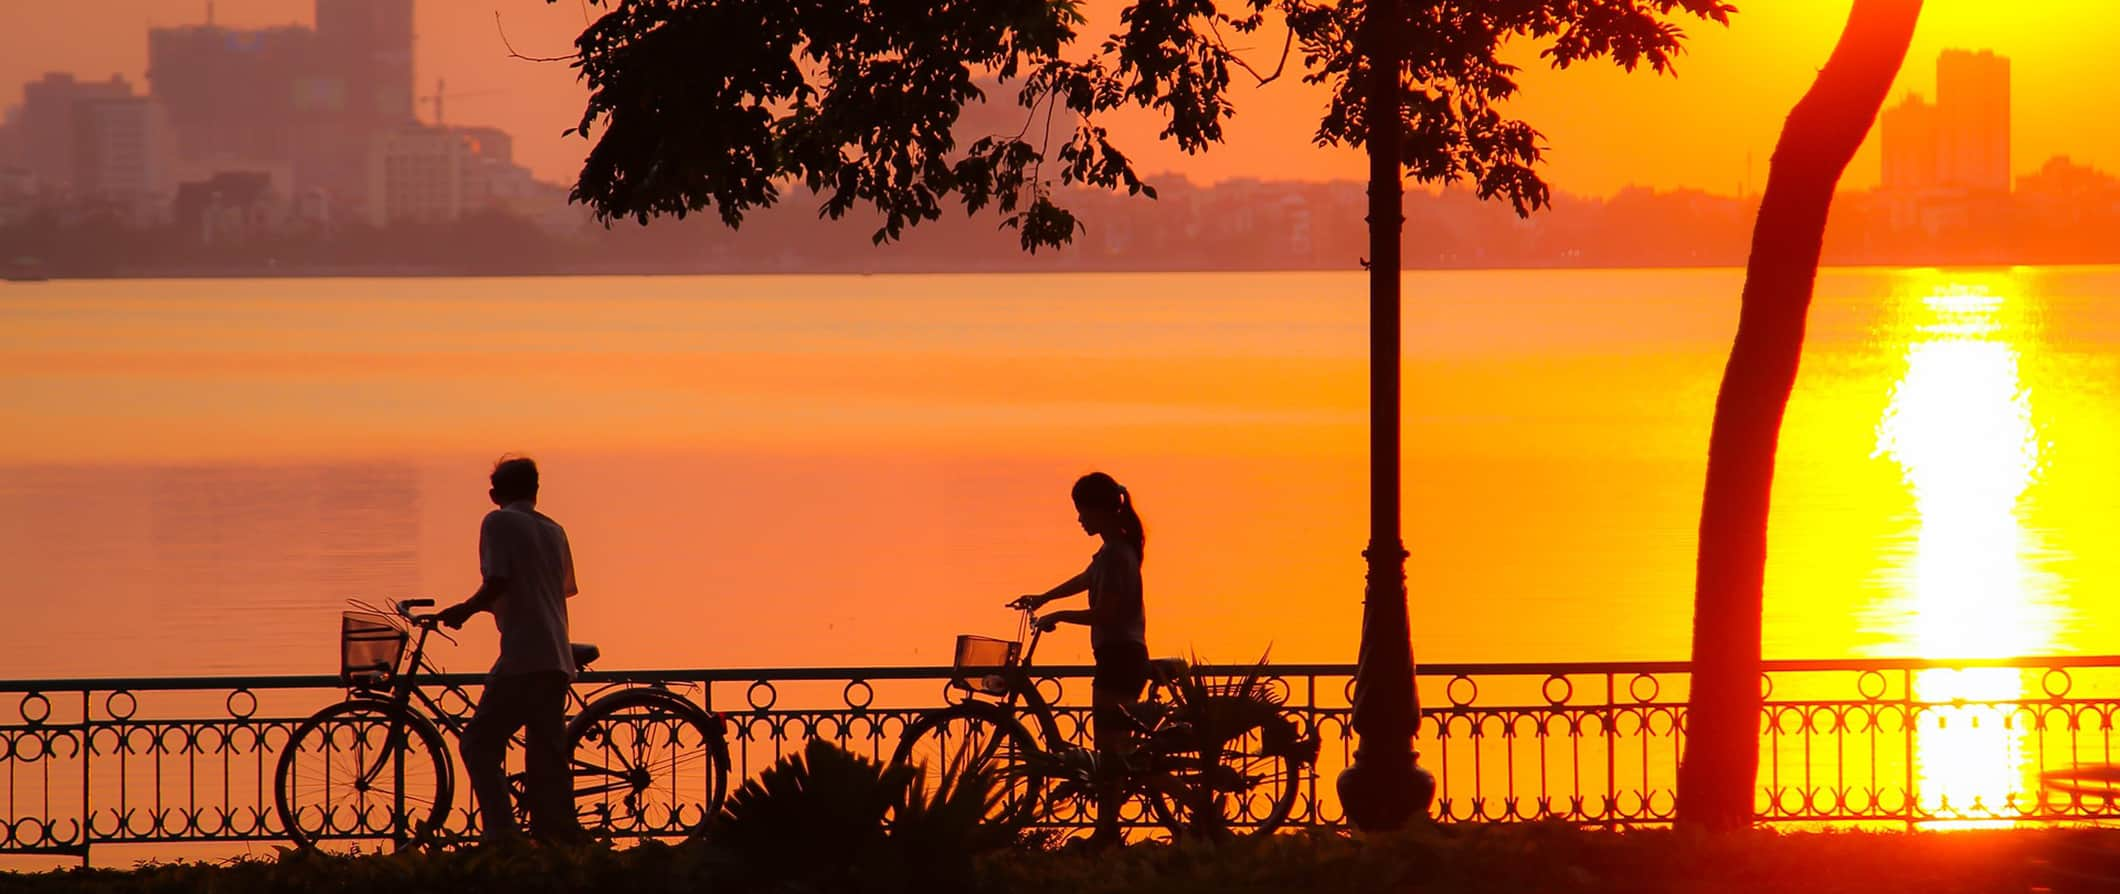 sunset and people on bikes in Hanoi